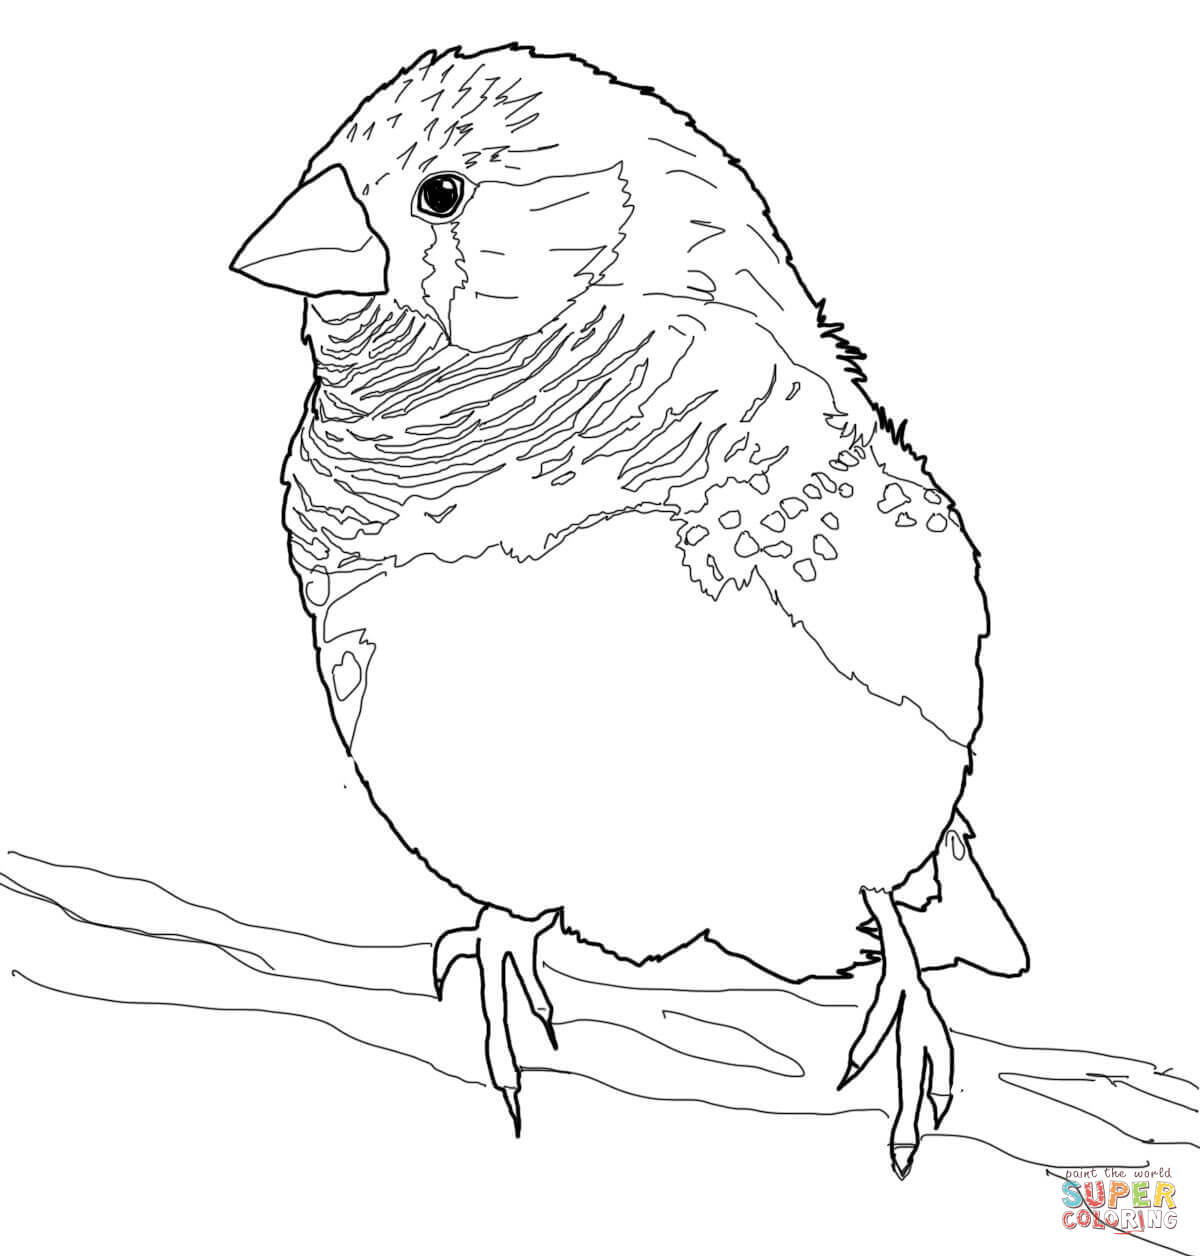 Finch coloring #13, Download drawings